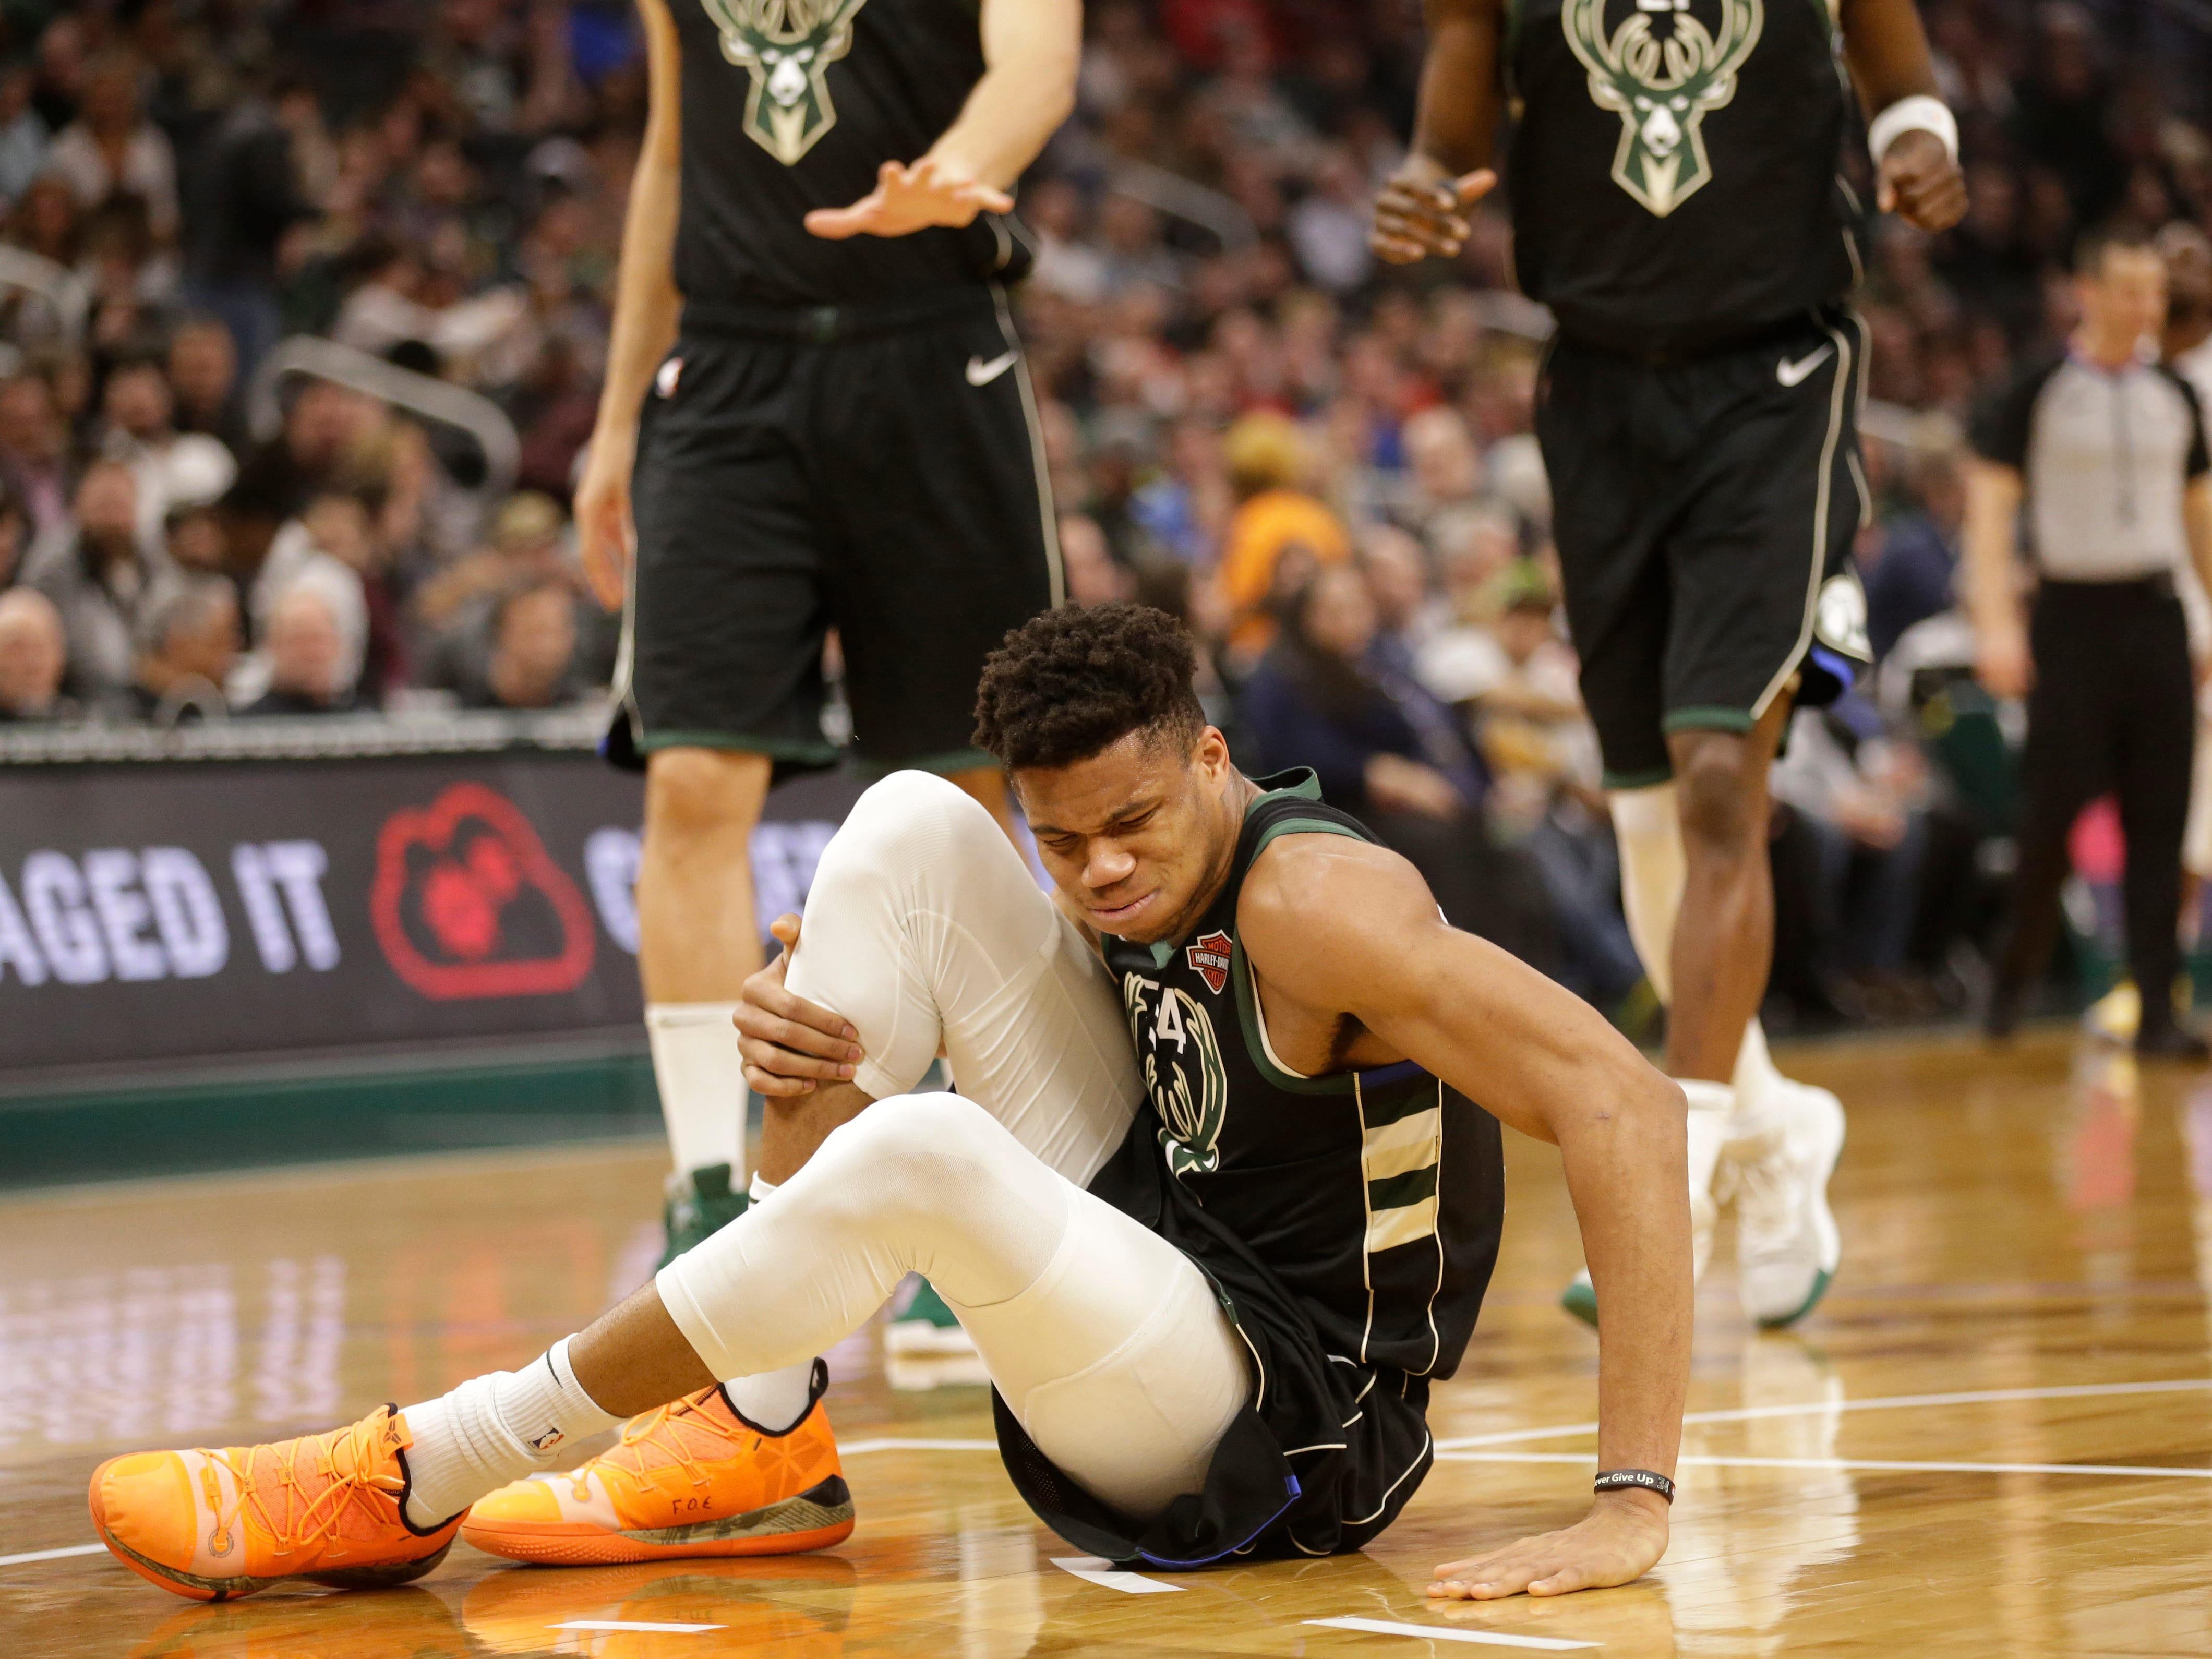 Bucks star Giannis Antetokounmpo sits on the court in some pain after rolling his right ankle during the first half.